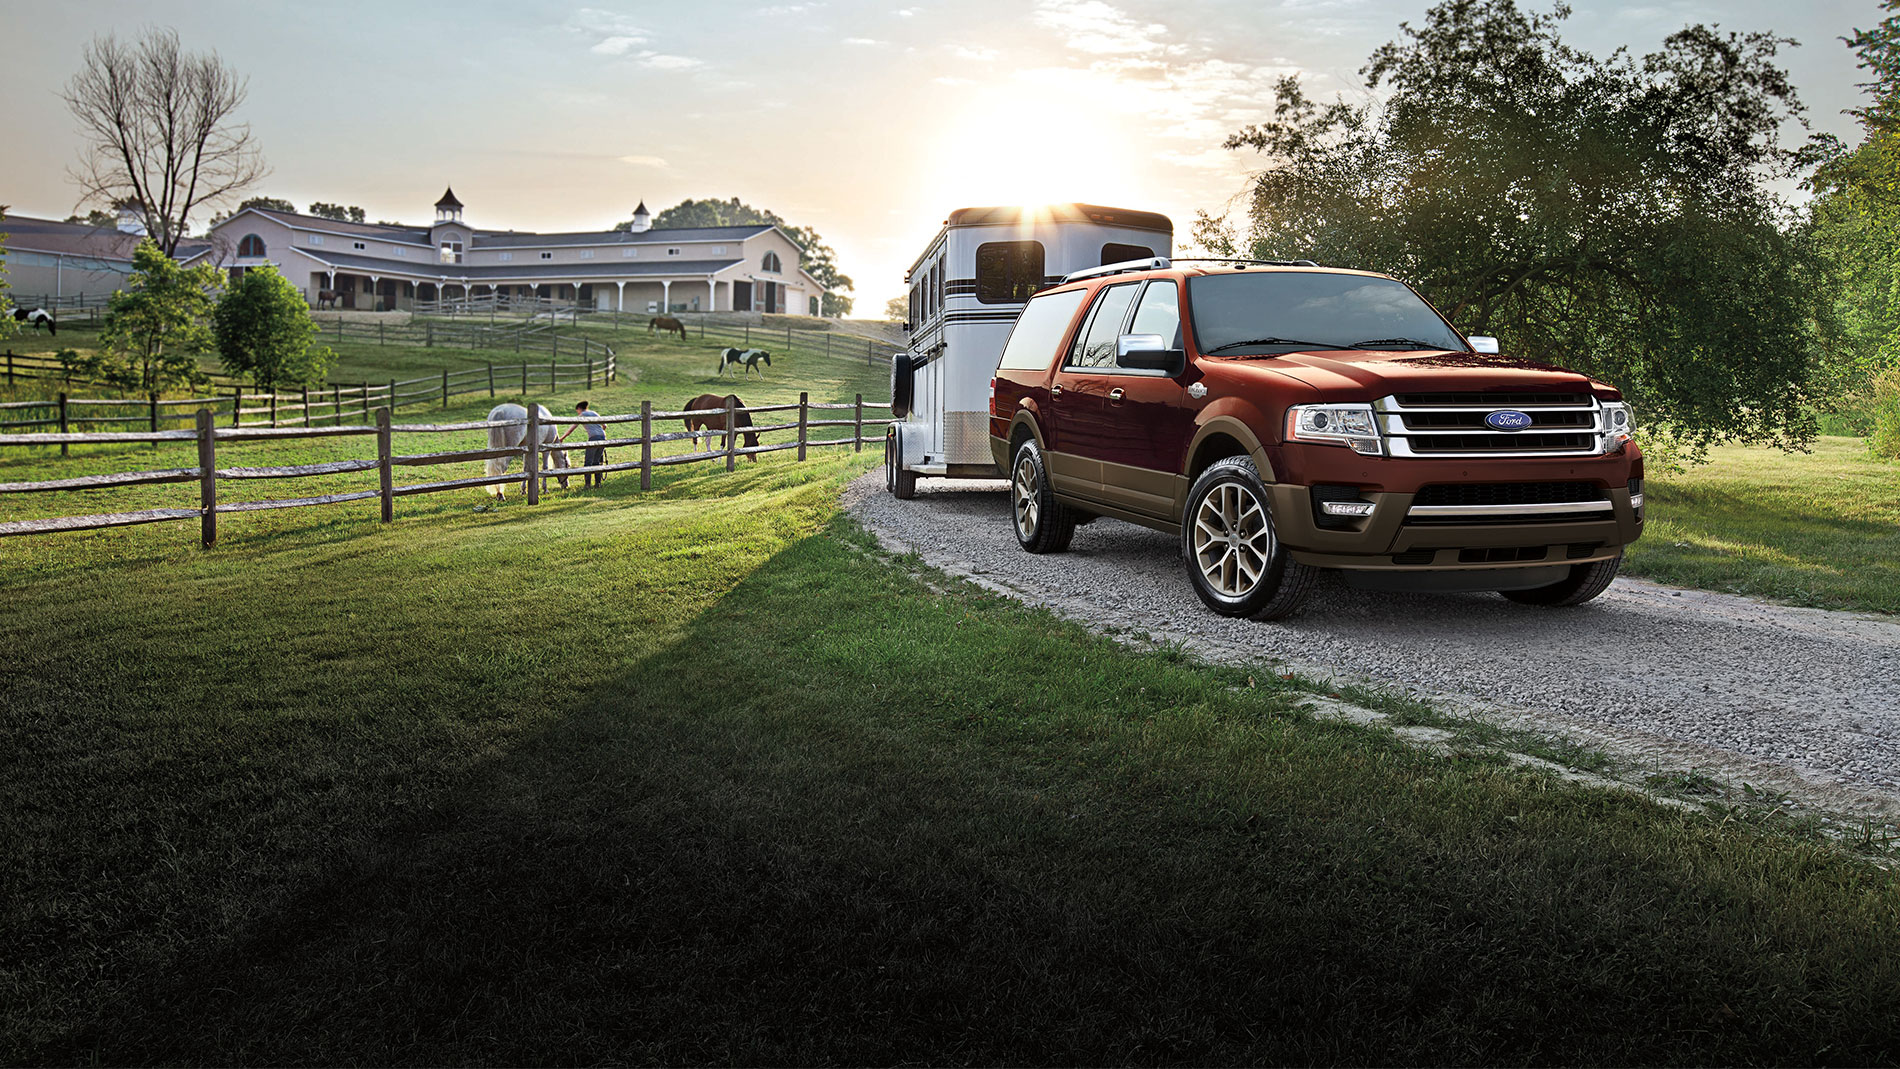 Ford Expedition Lease And Finance Offers In Quincy Ma Quirk Security Systems